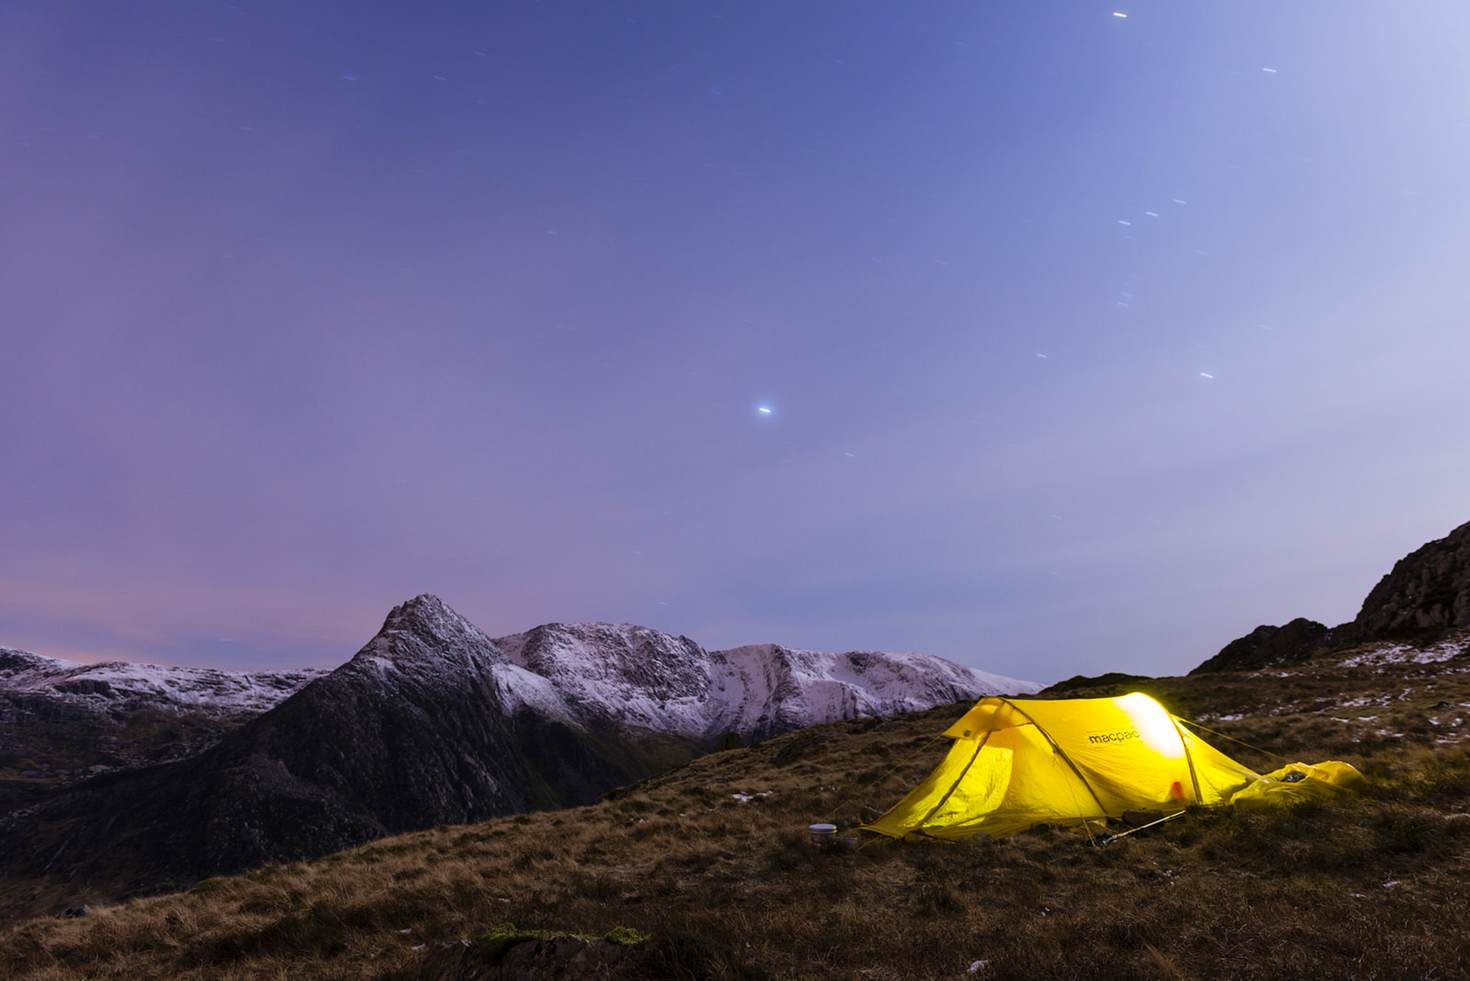 Can't get enough of the great outdoors? Camp under the stars for a night © Justin Foulkes / Lonely Planet